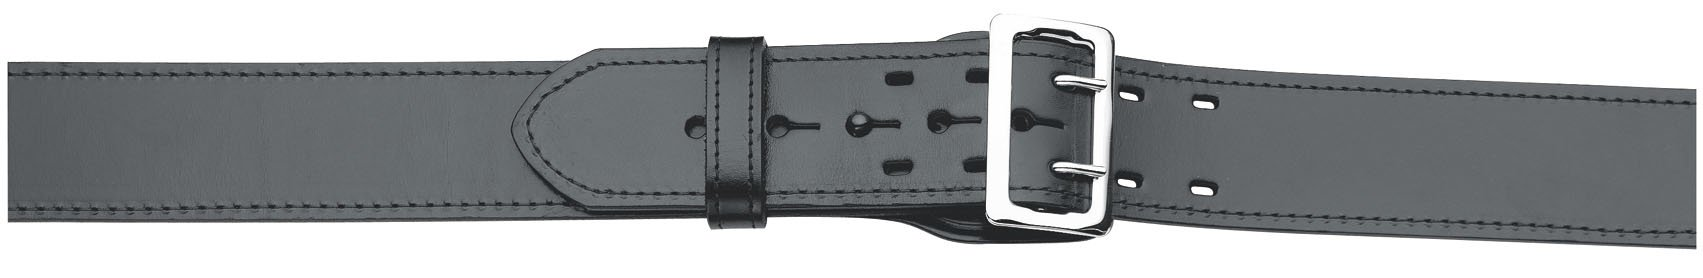 Gould & Goodrich K59-38Fl Lined Duty Belt fits 38-Inch Waist (97 cm, Black)